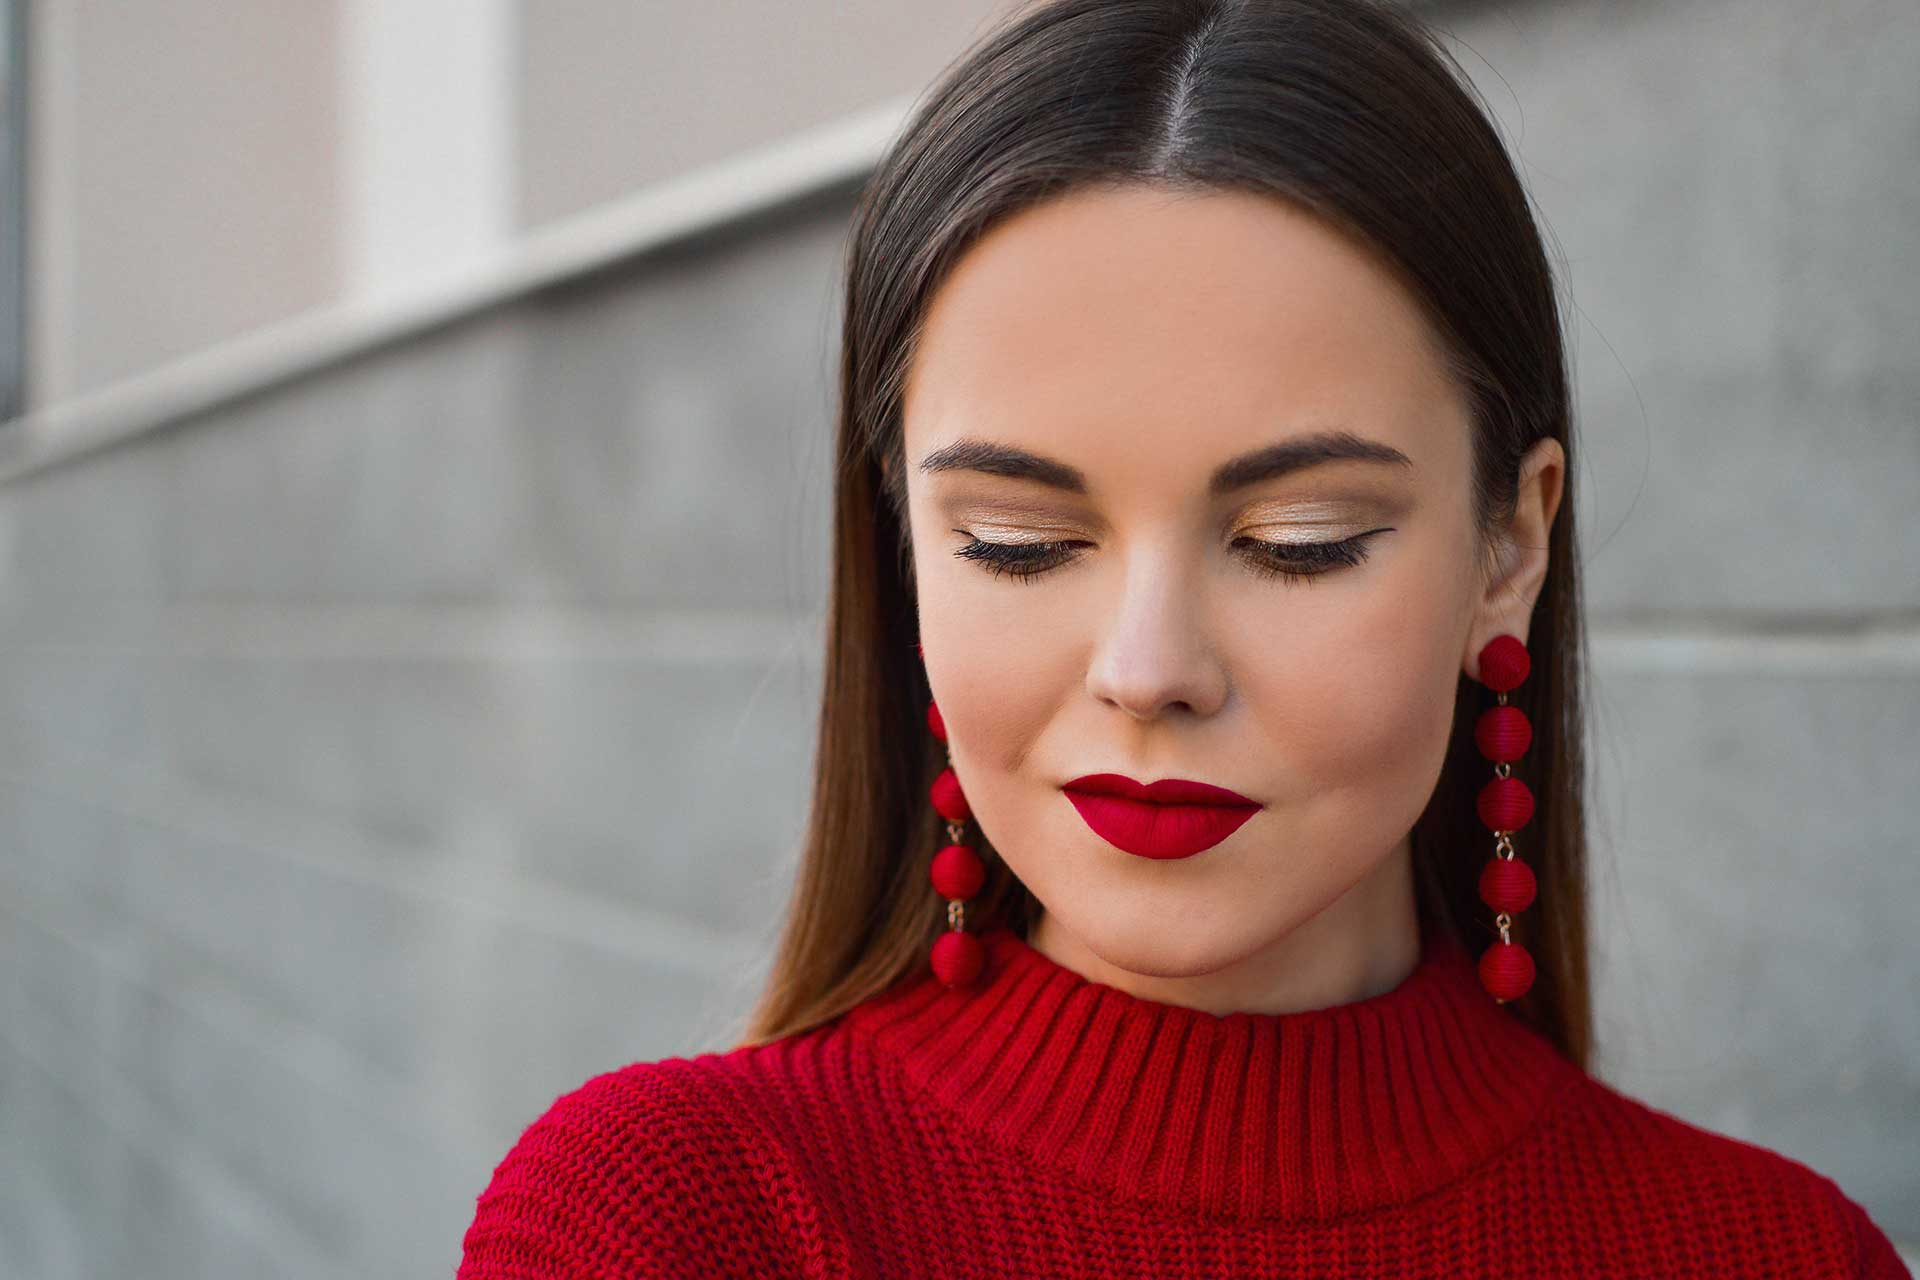 woman in a red sweater with sculpted eyebrows and lashes wearing red lipstick